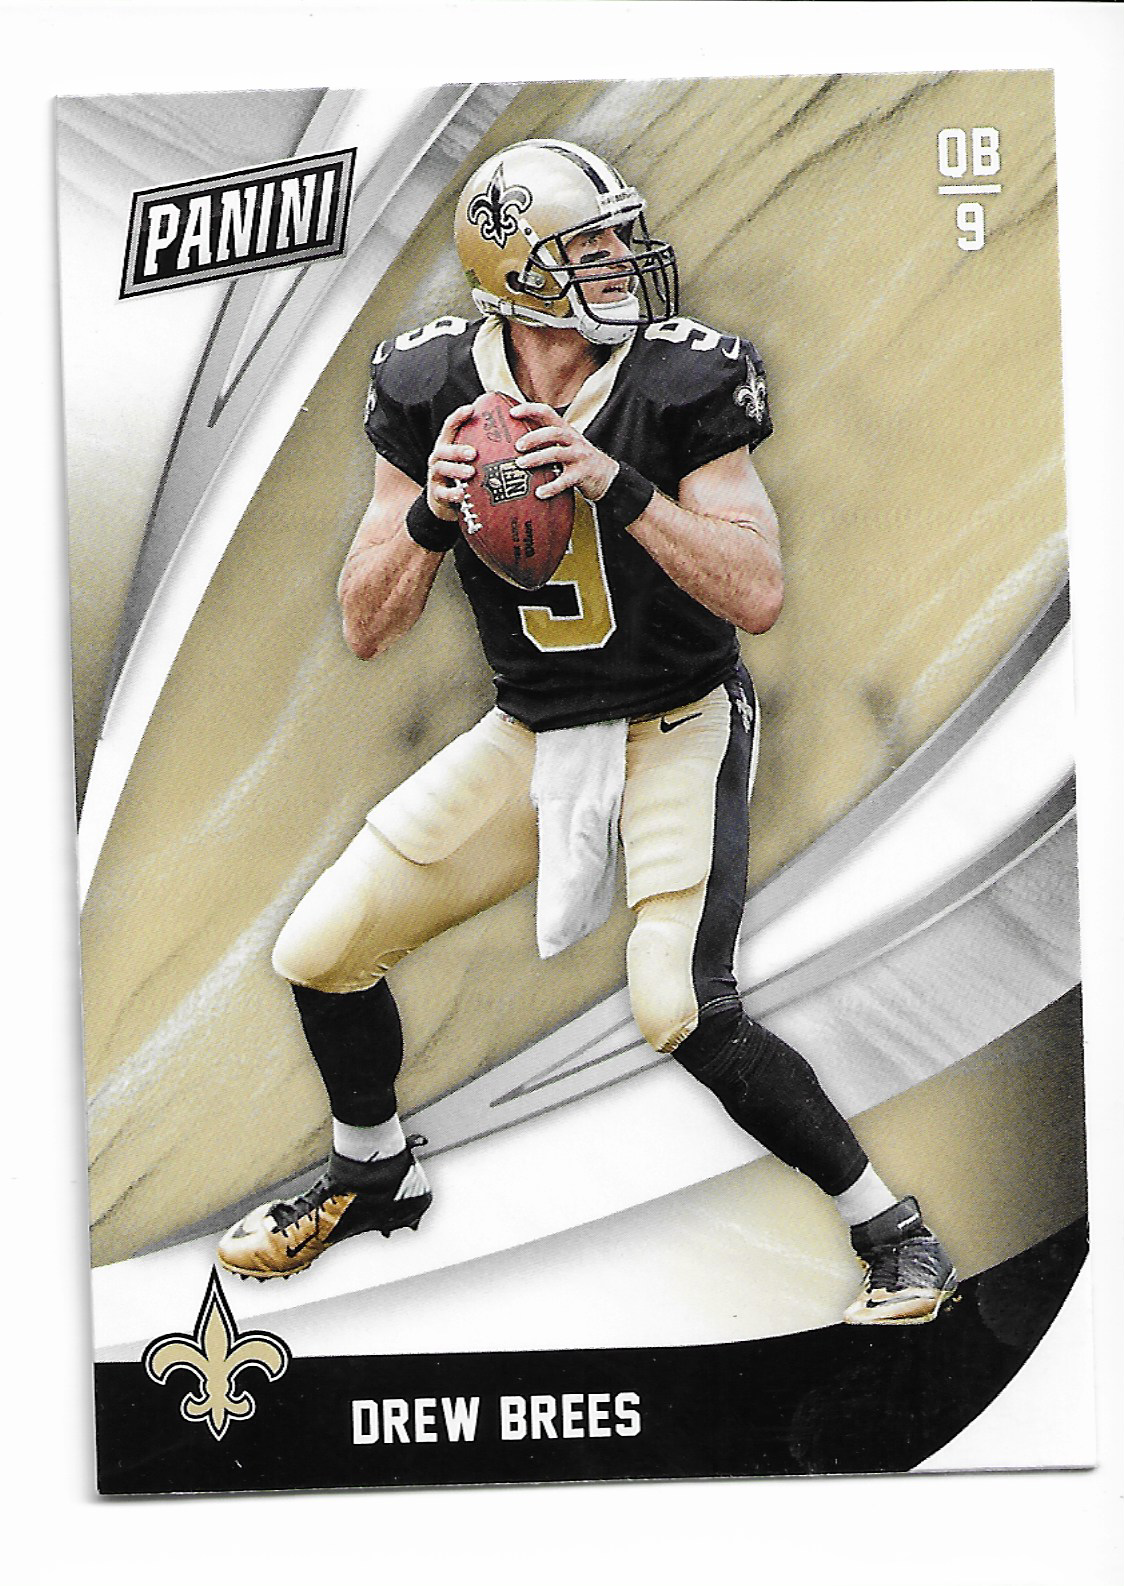 2018 Panini Black Friday Drew Brees card